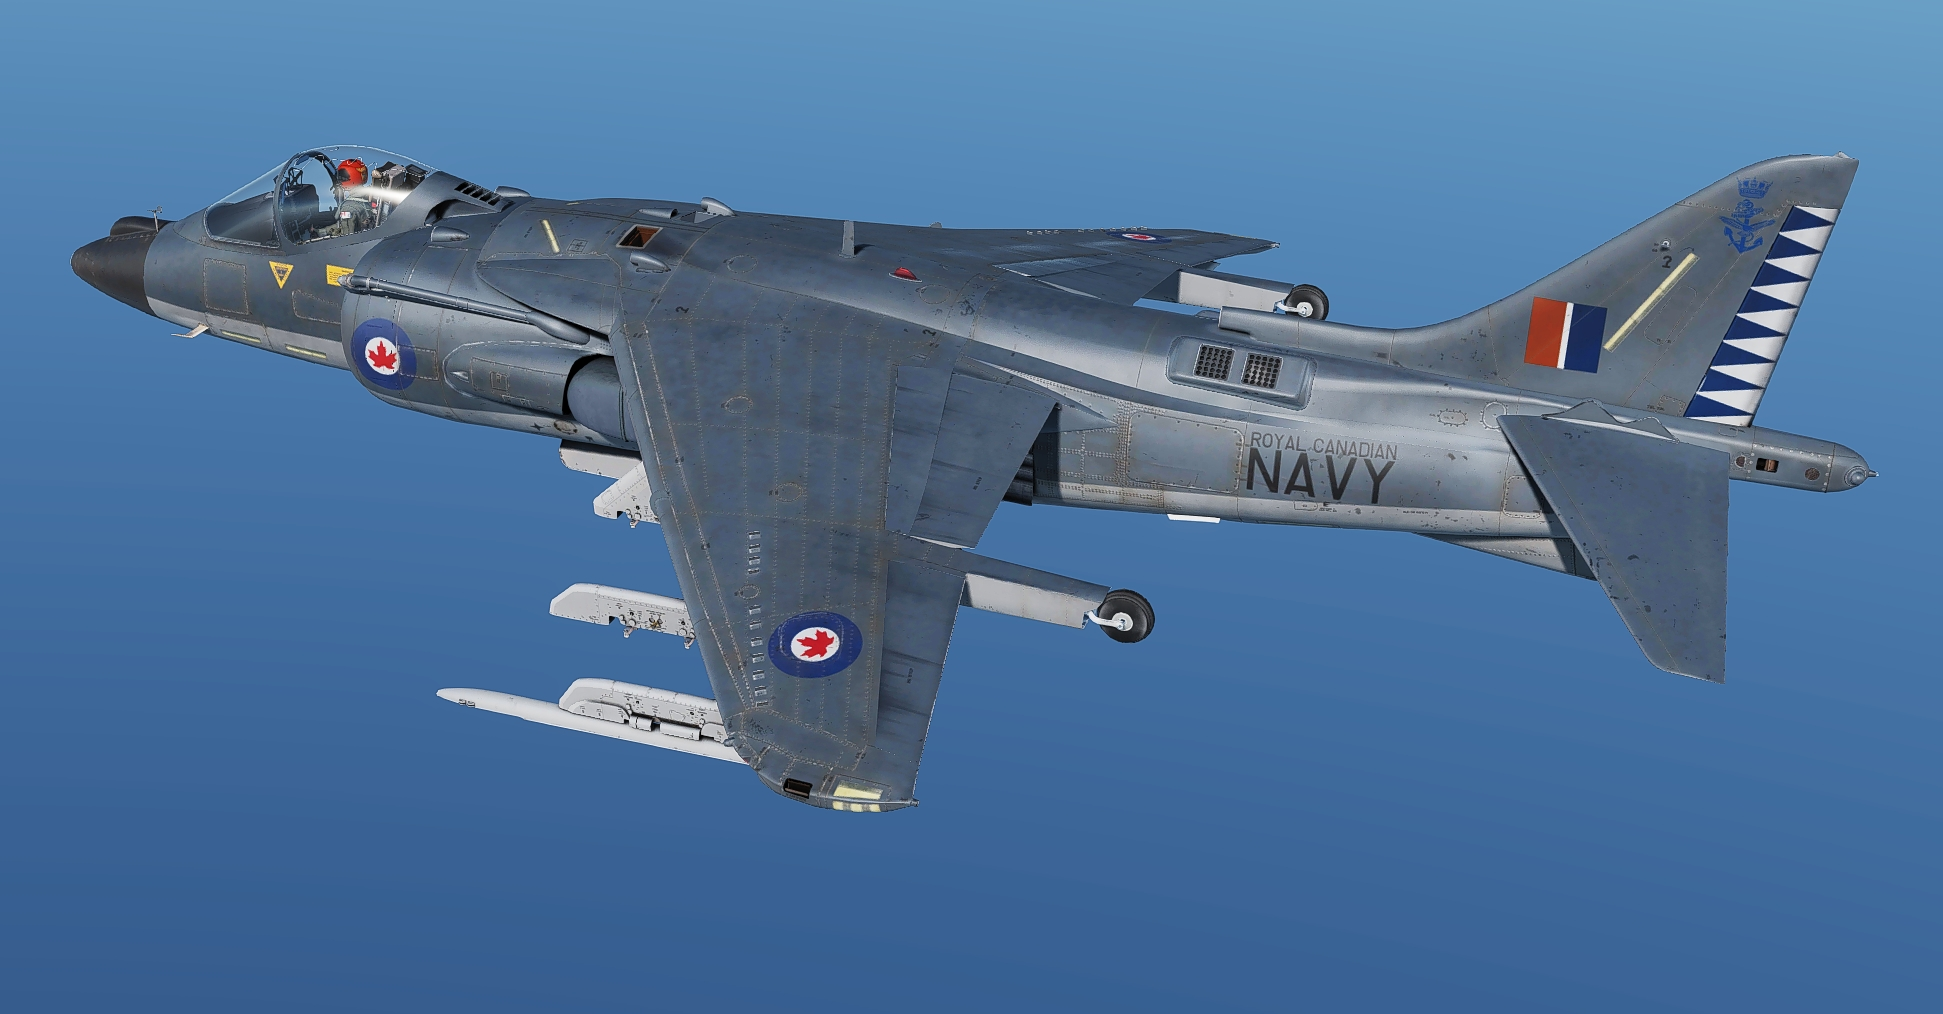 Royal Canadian Navy Harriers (Fictional)